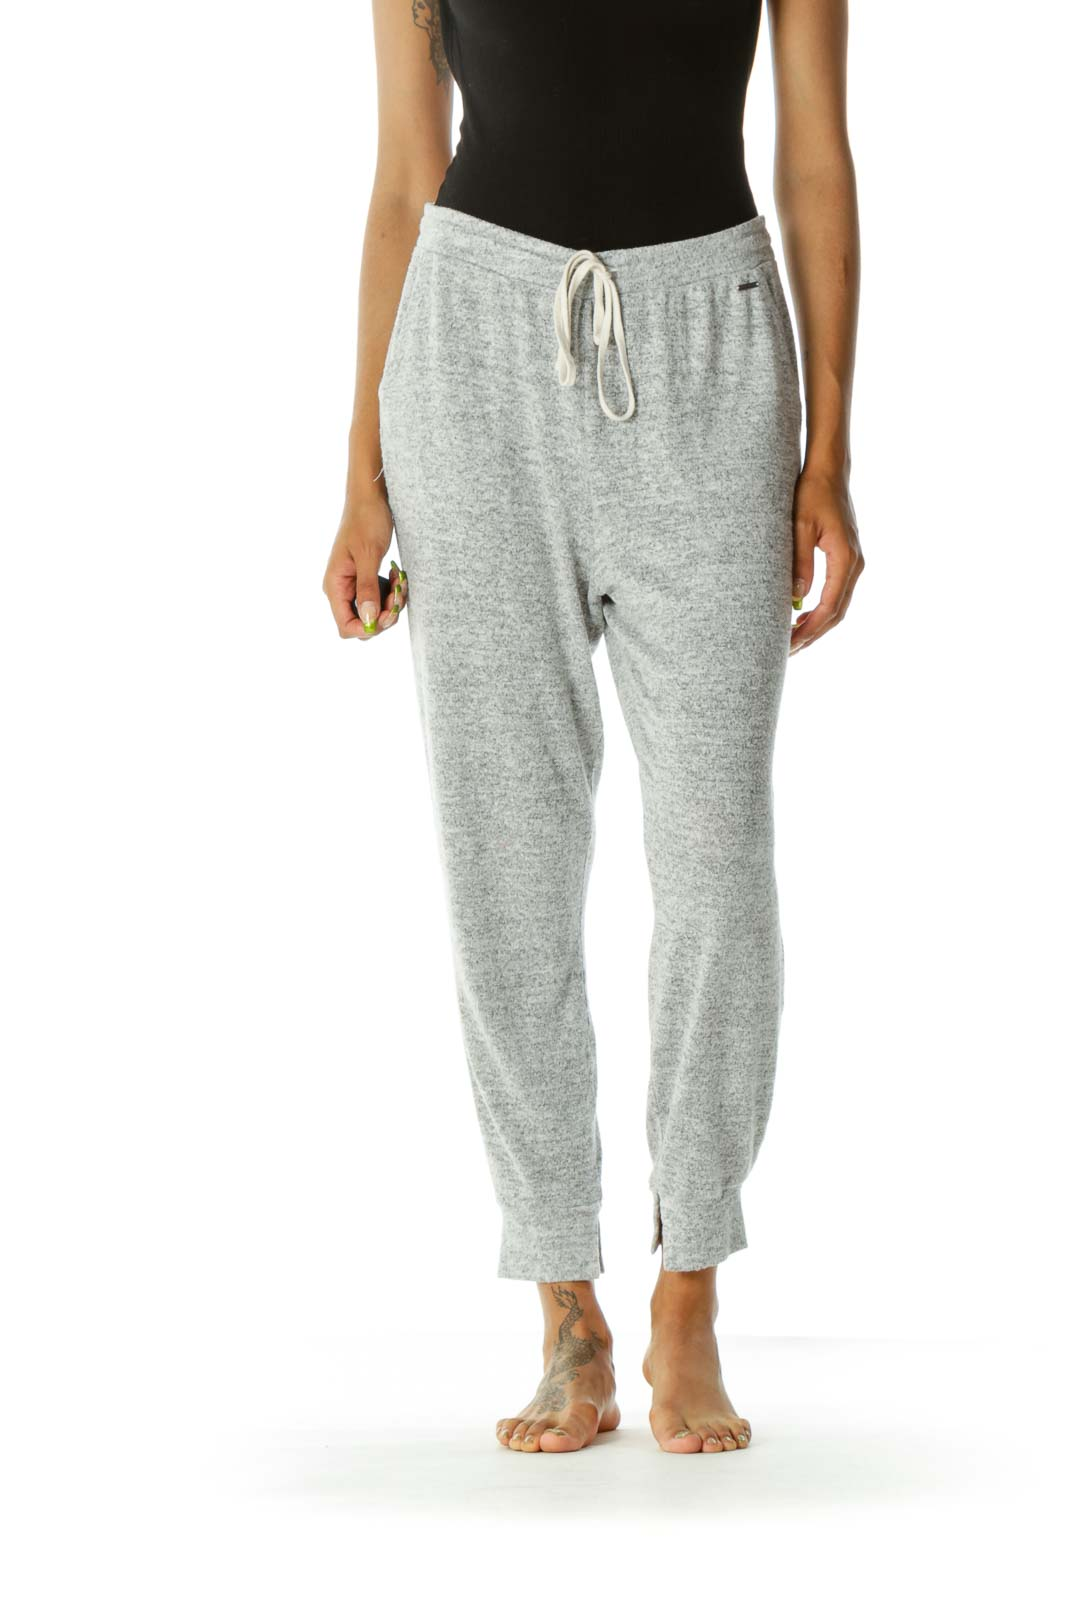 Gray Mottled Drawstring Stretch Comfy Pocketed Joggers